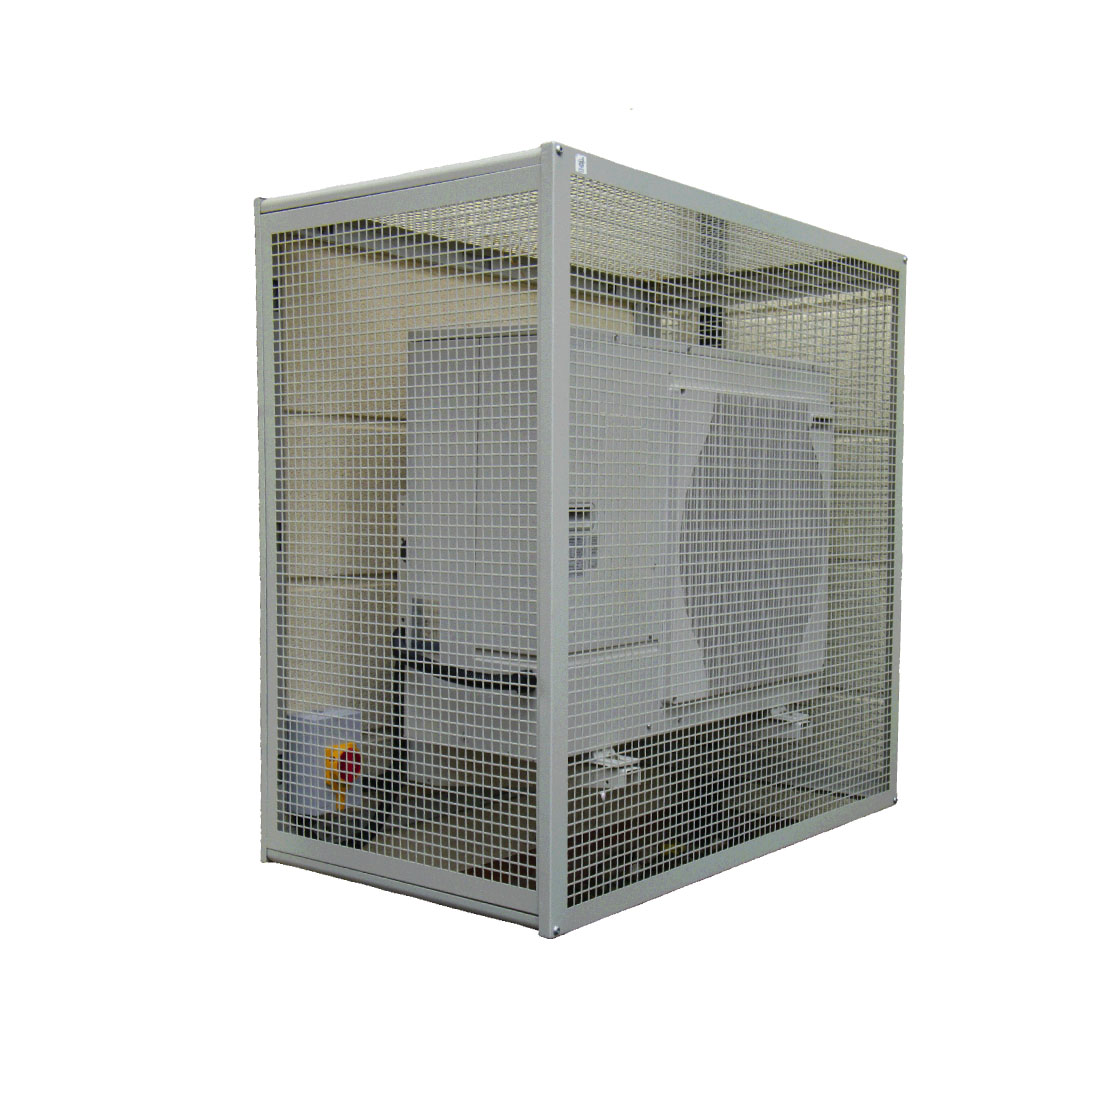 750 Deep Series Cages